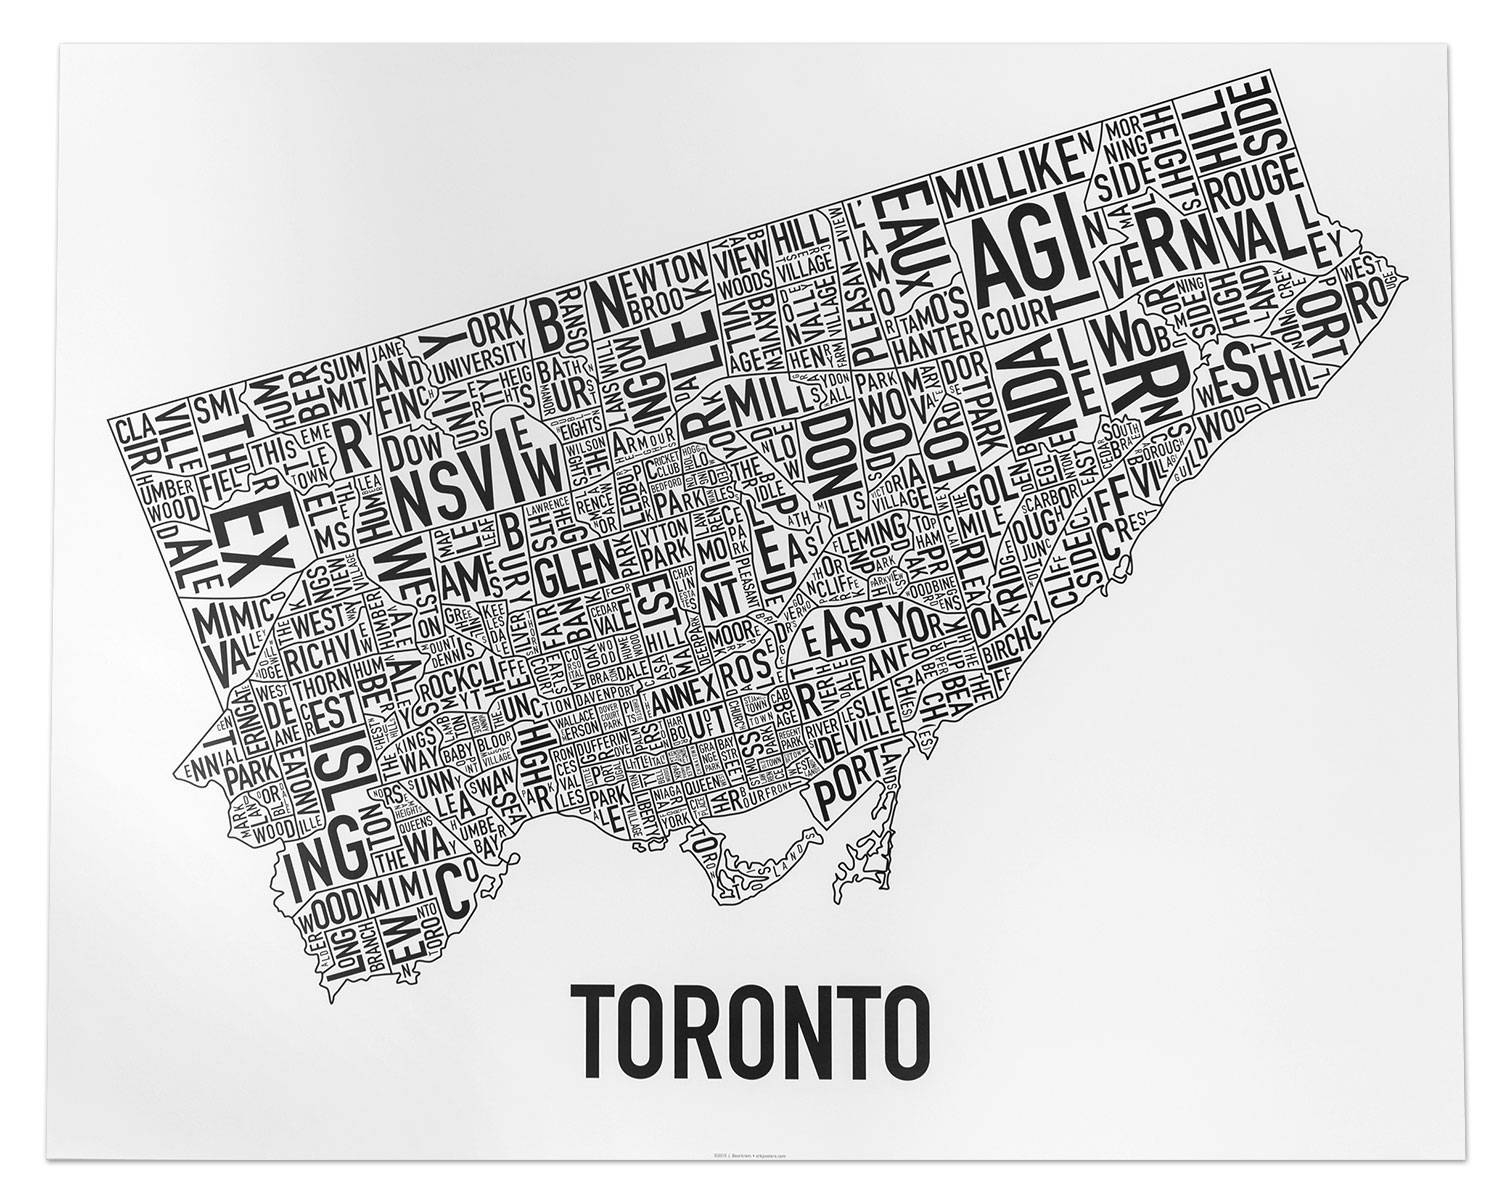 Toronto Neighborhood Map Posters & Prints – Display Your Love Of Intended For Current Map Wall Art Toronto (View 2 of 20)